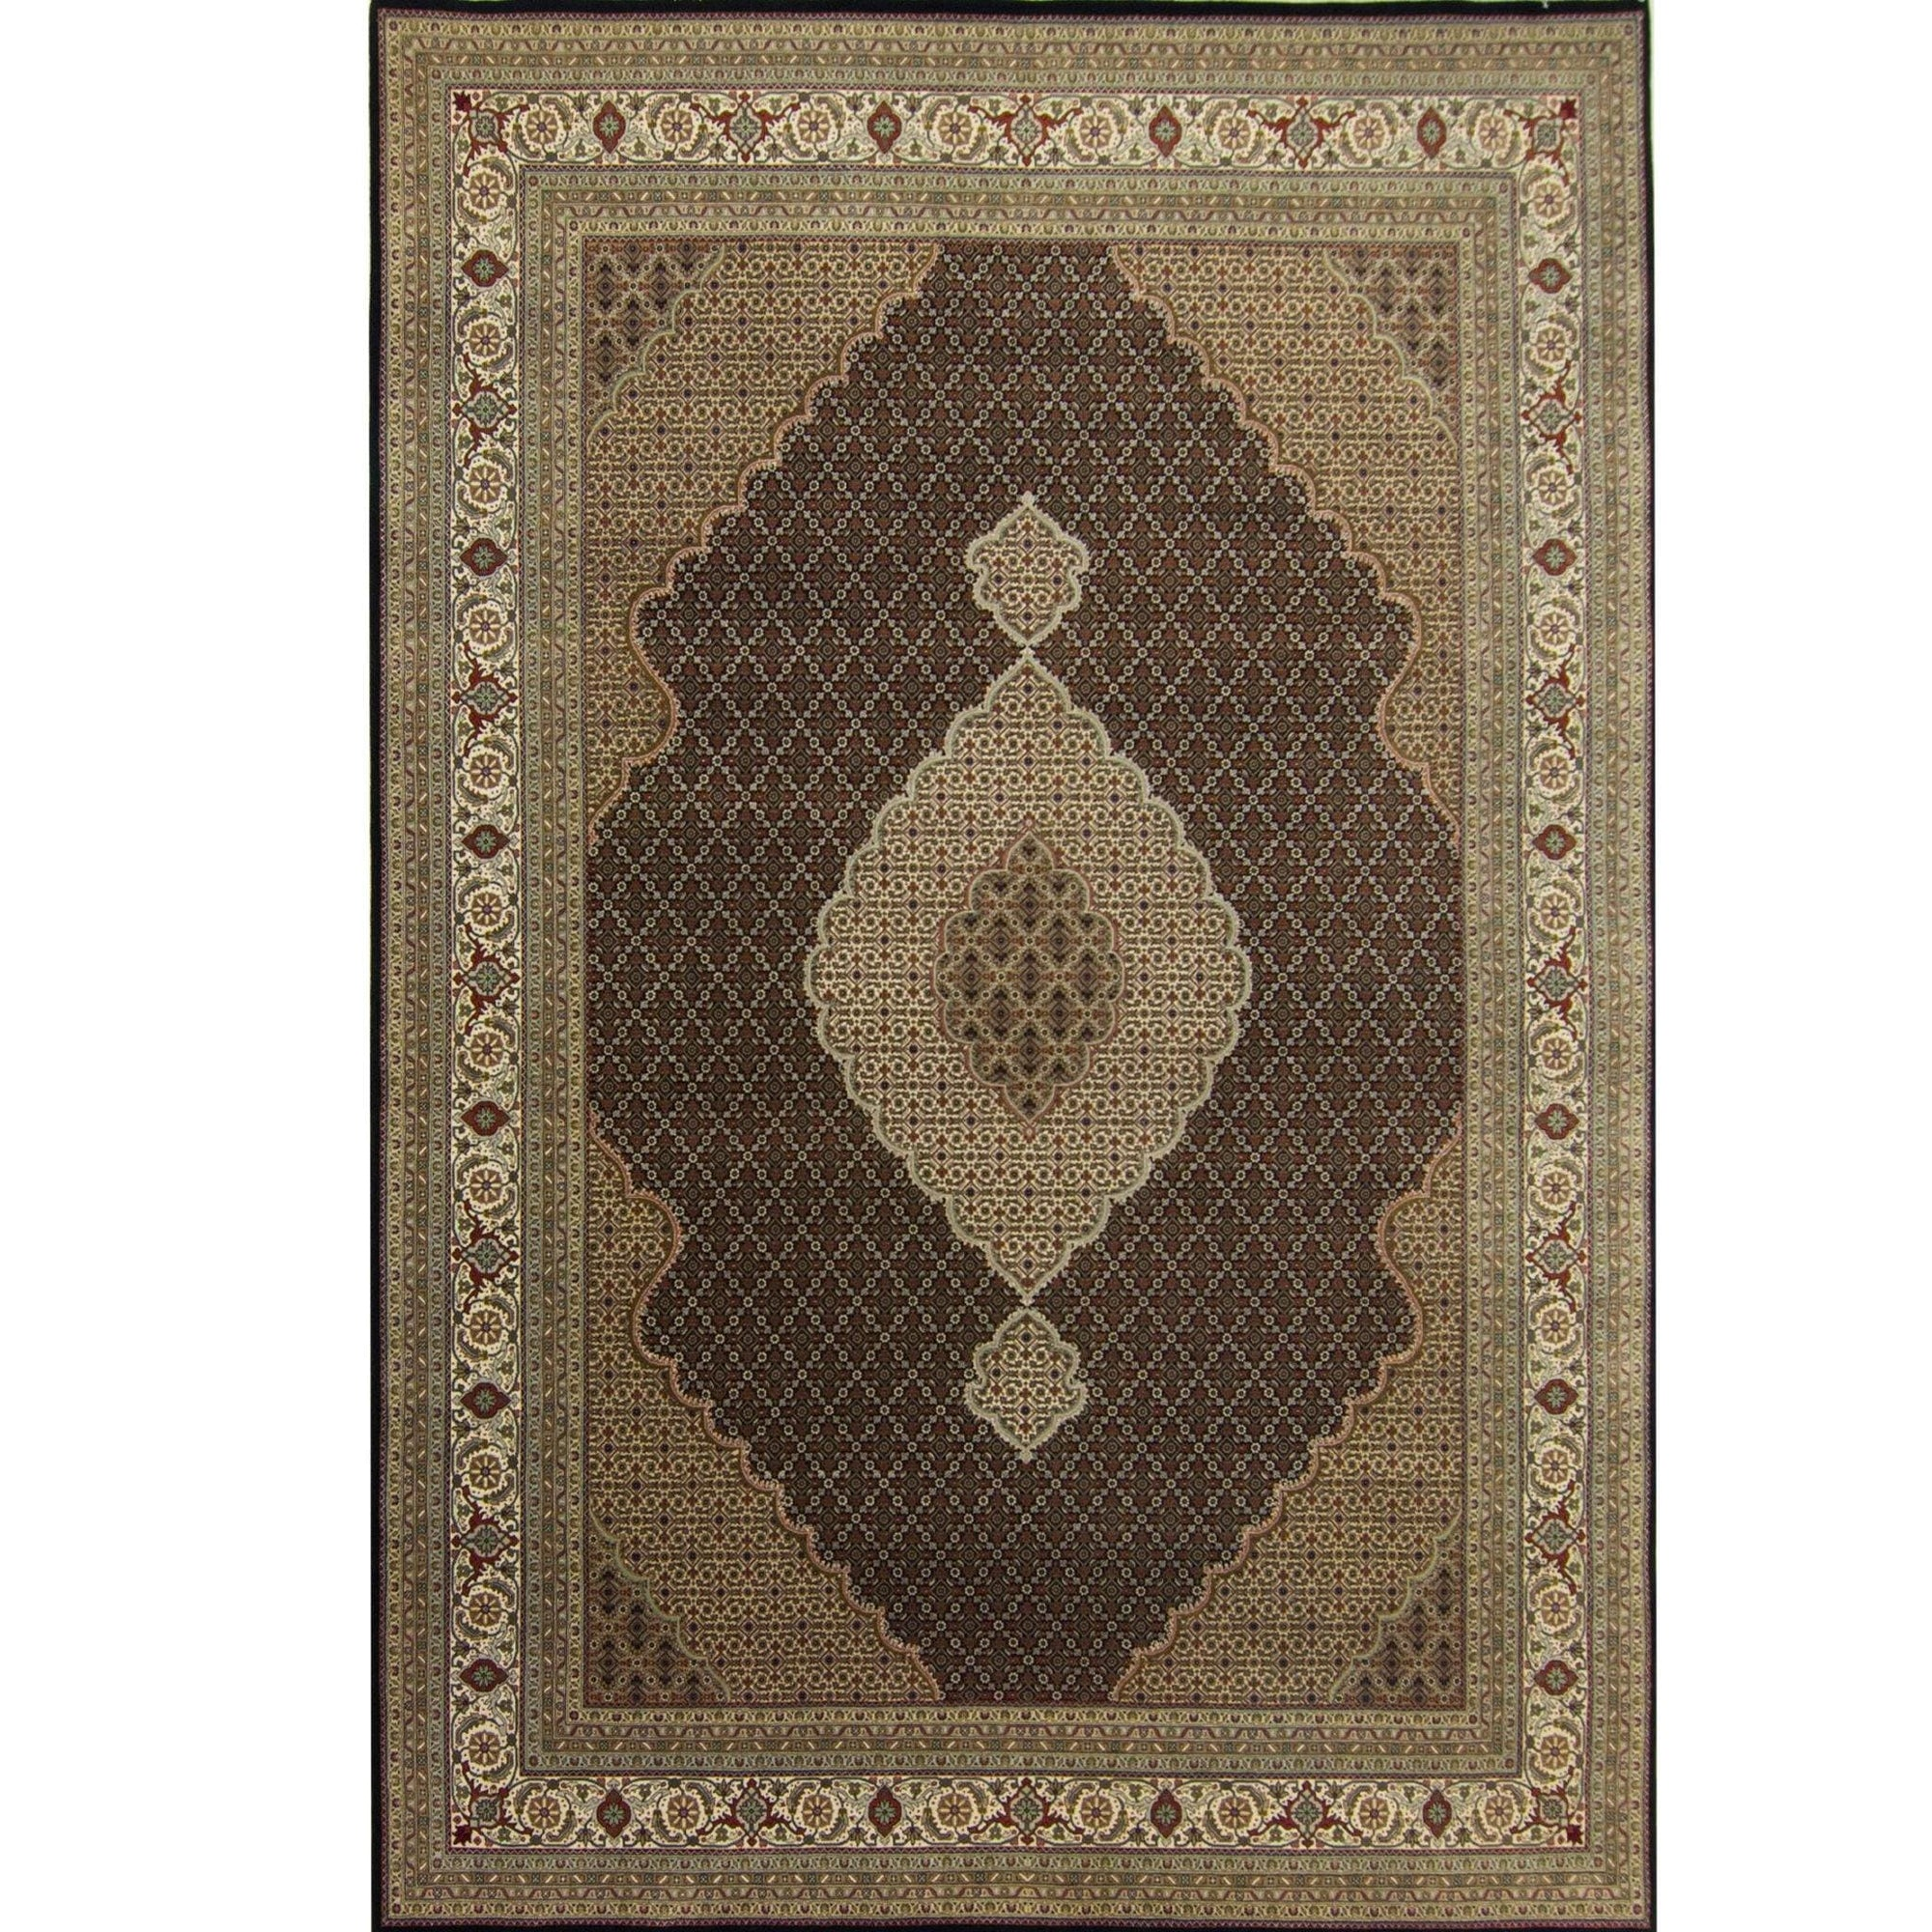 Super Fine Hand-knotted Wool and Silk Tabriz - Mahi Rug 265 cm x 367 cm Persian-Rug | House-of-Haghi | NewMarket | Auckland | NZ | Handmade Persian Rugs | Hand Knotted Persian Rugs